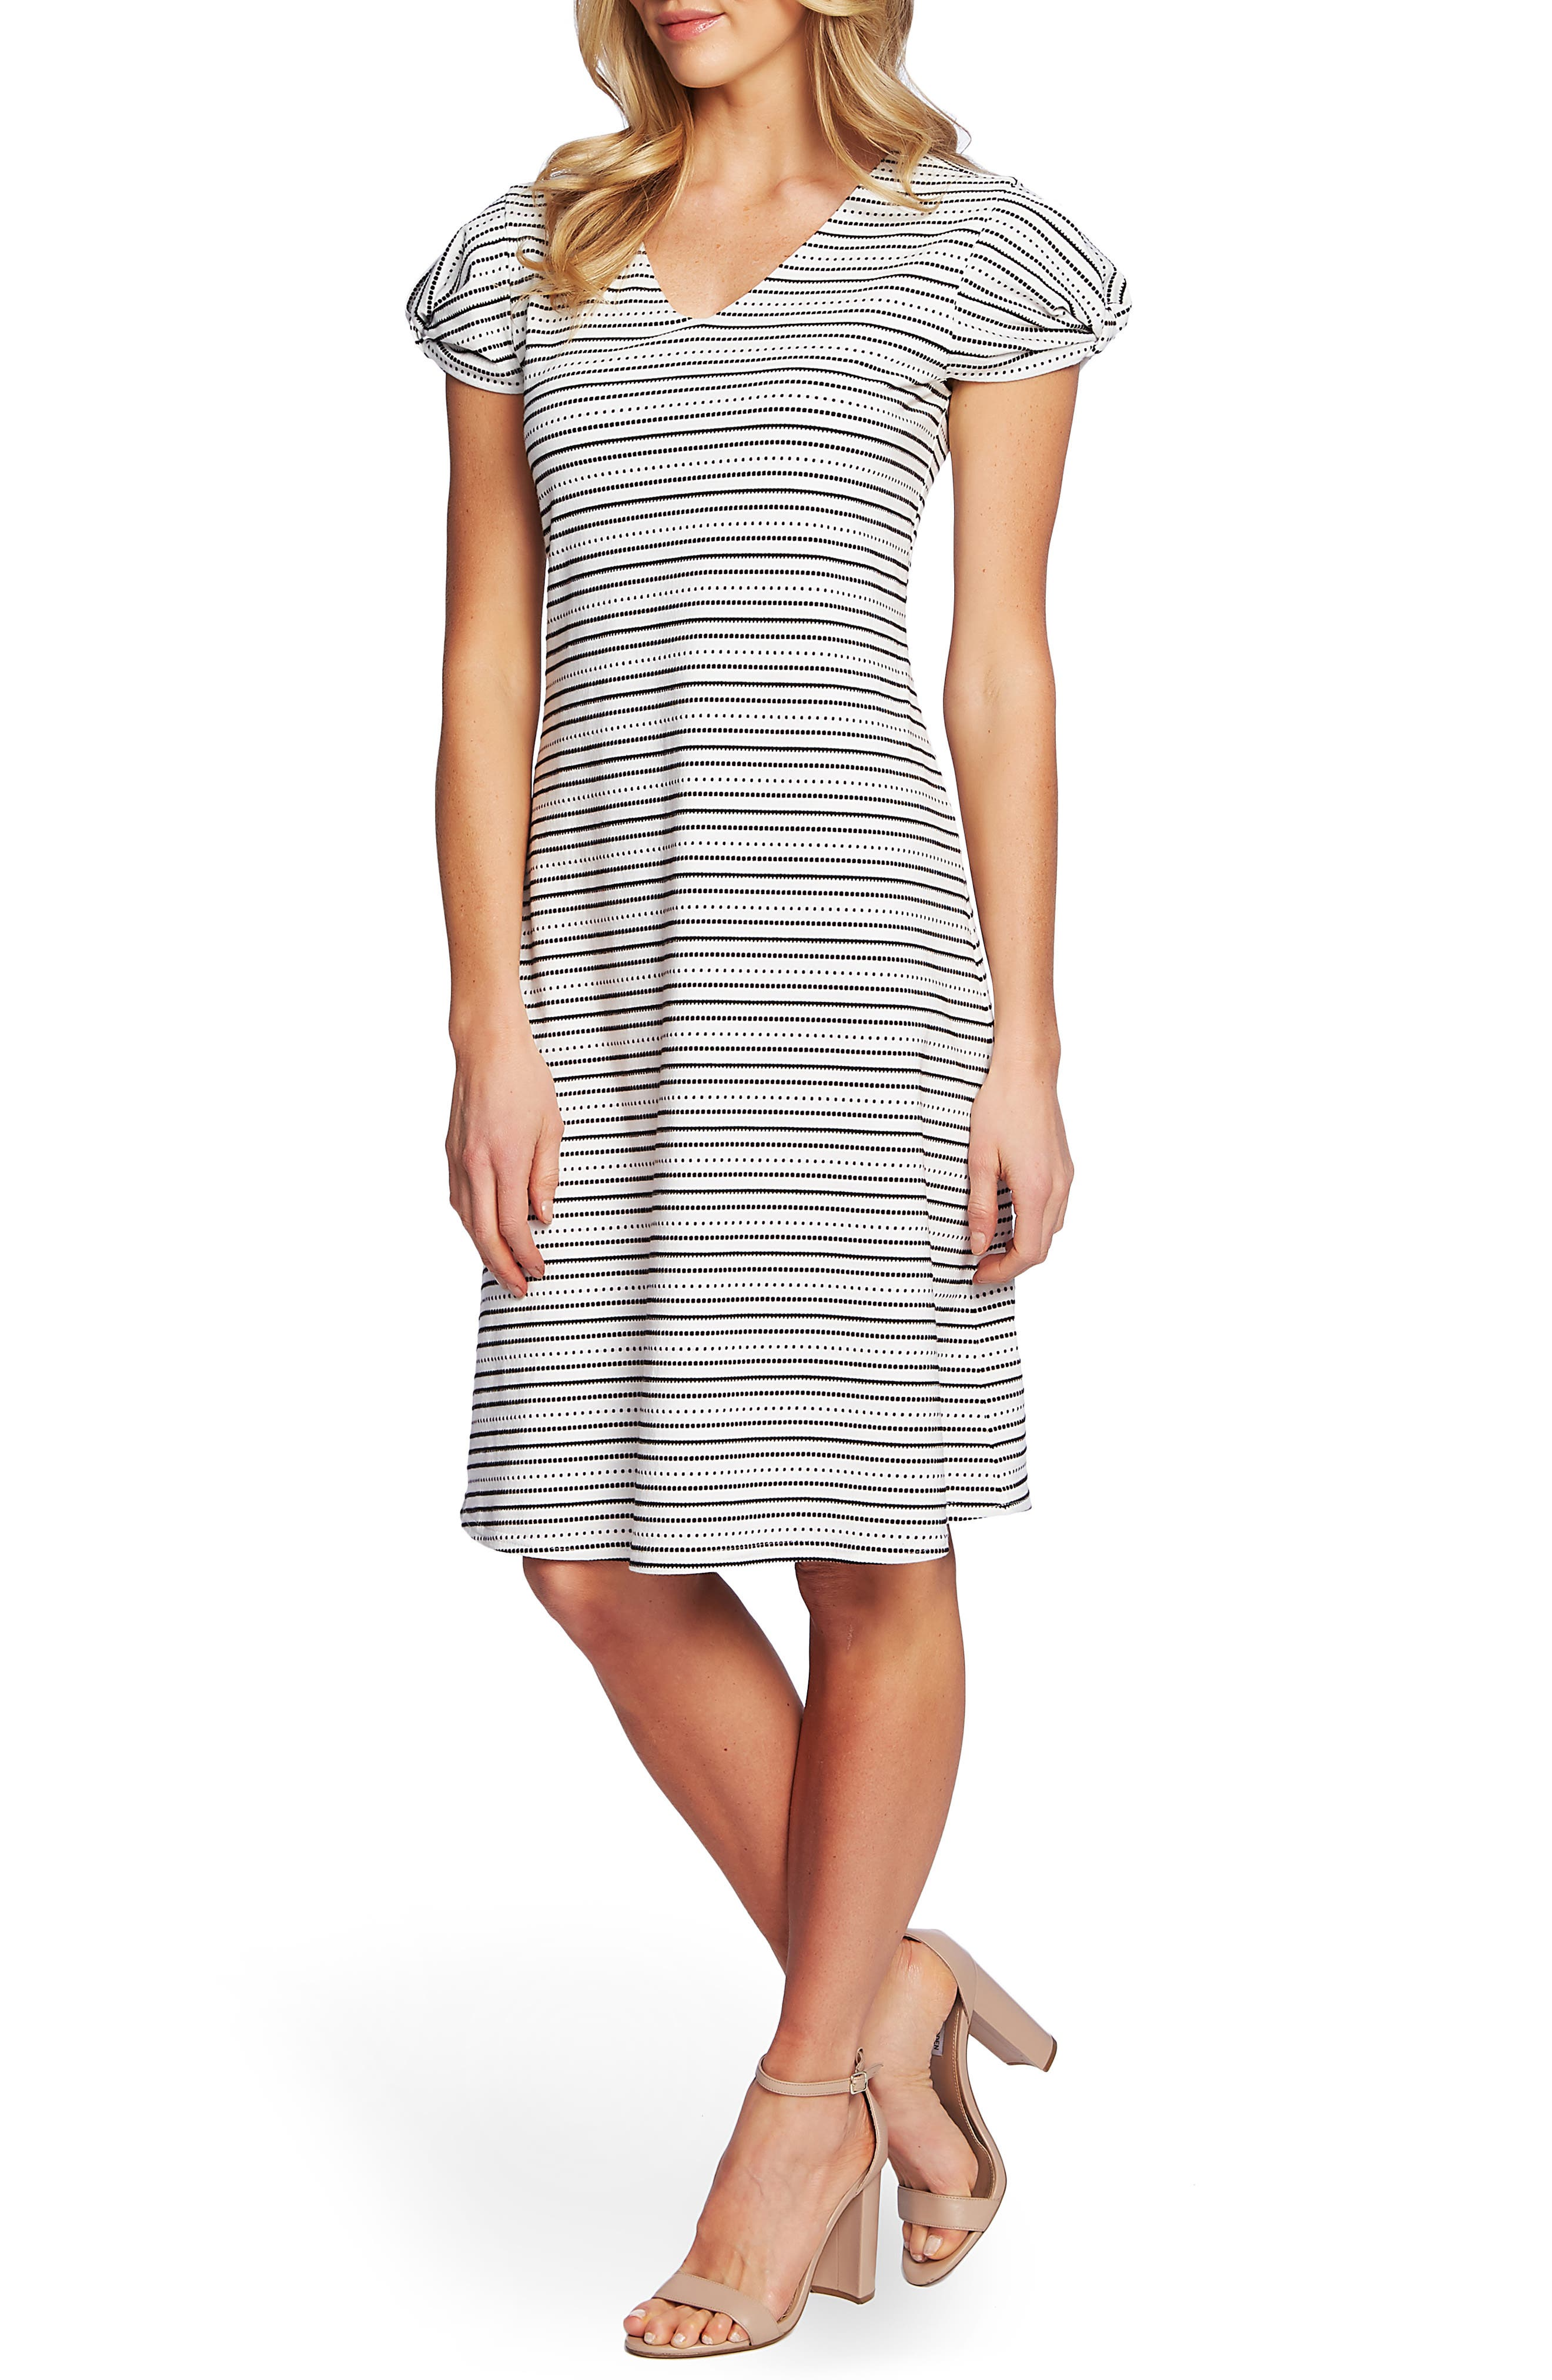 Cece Puffed Sleeve Striped Shift Dress, Ivory